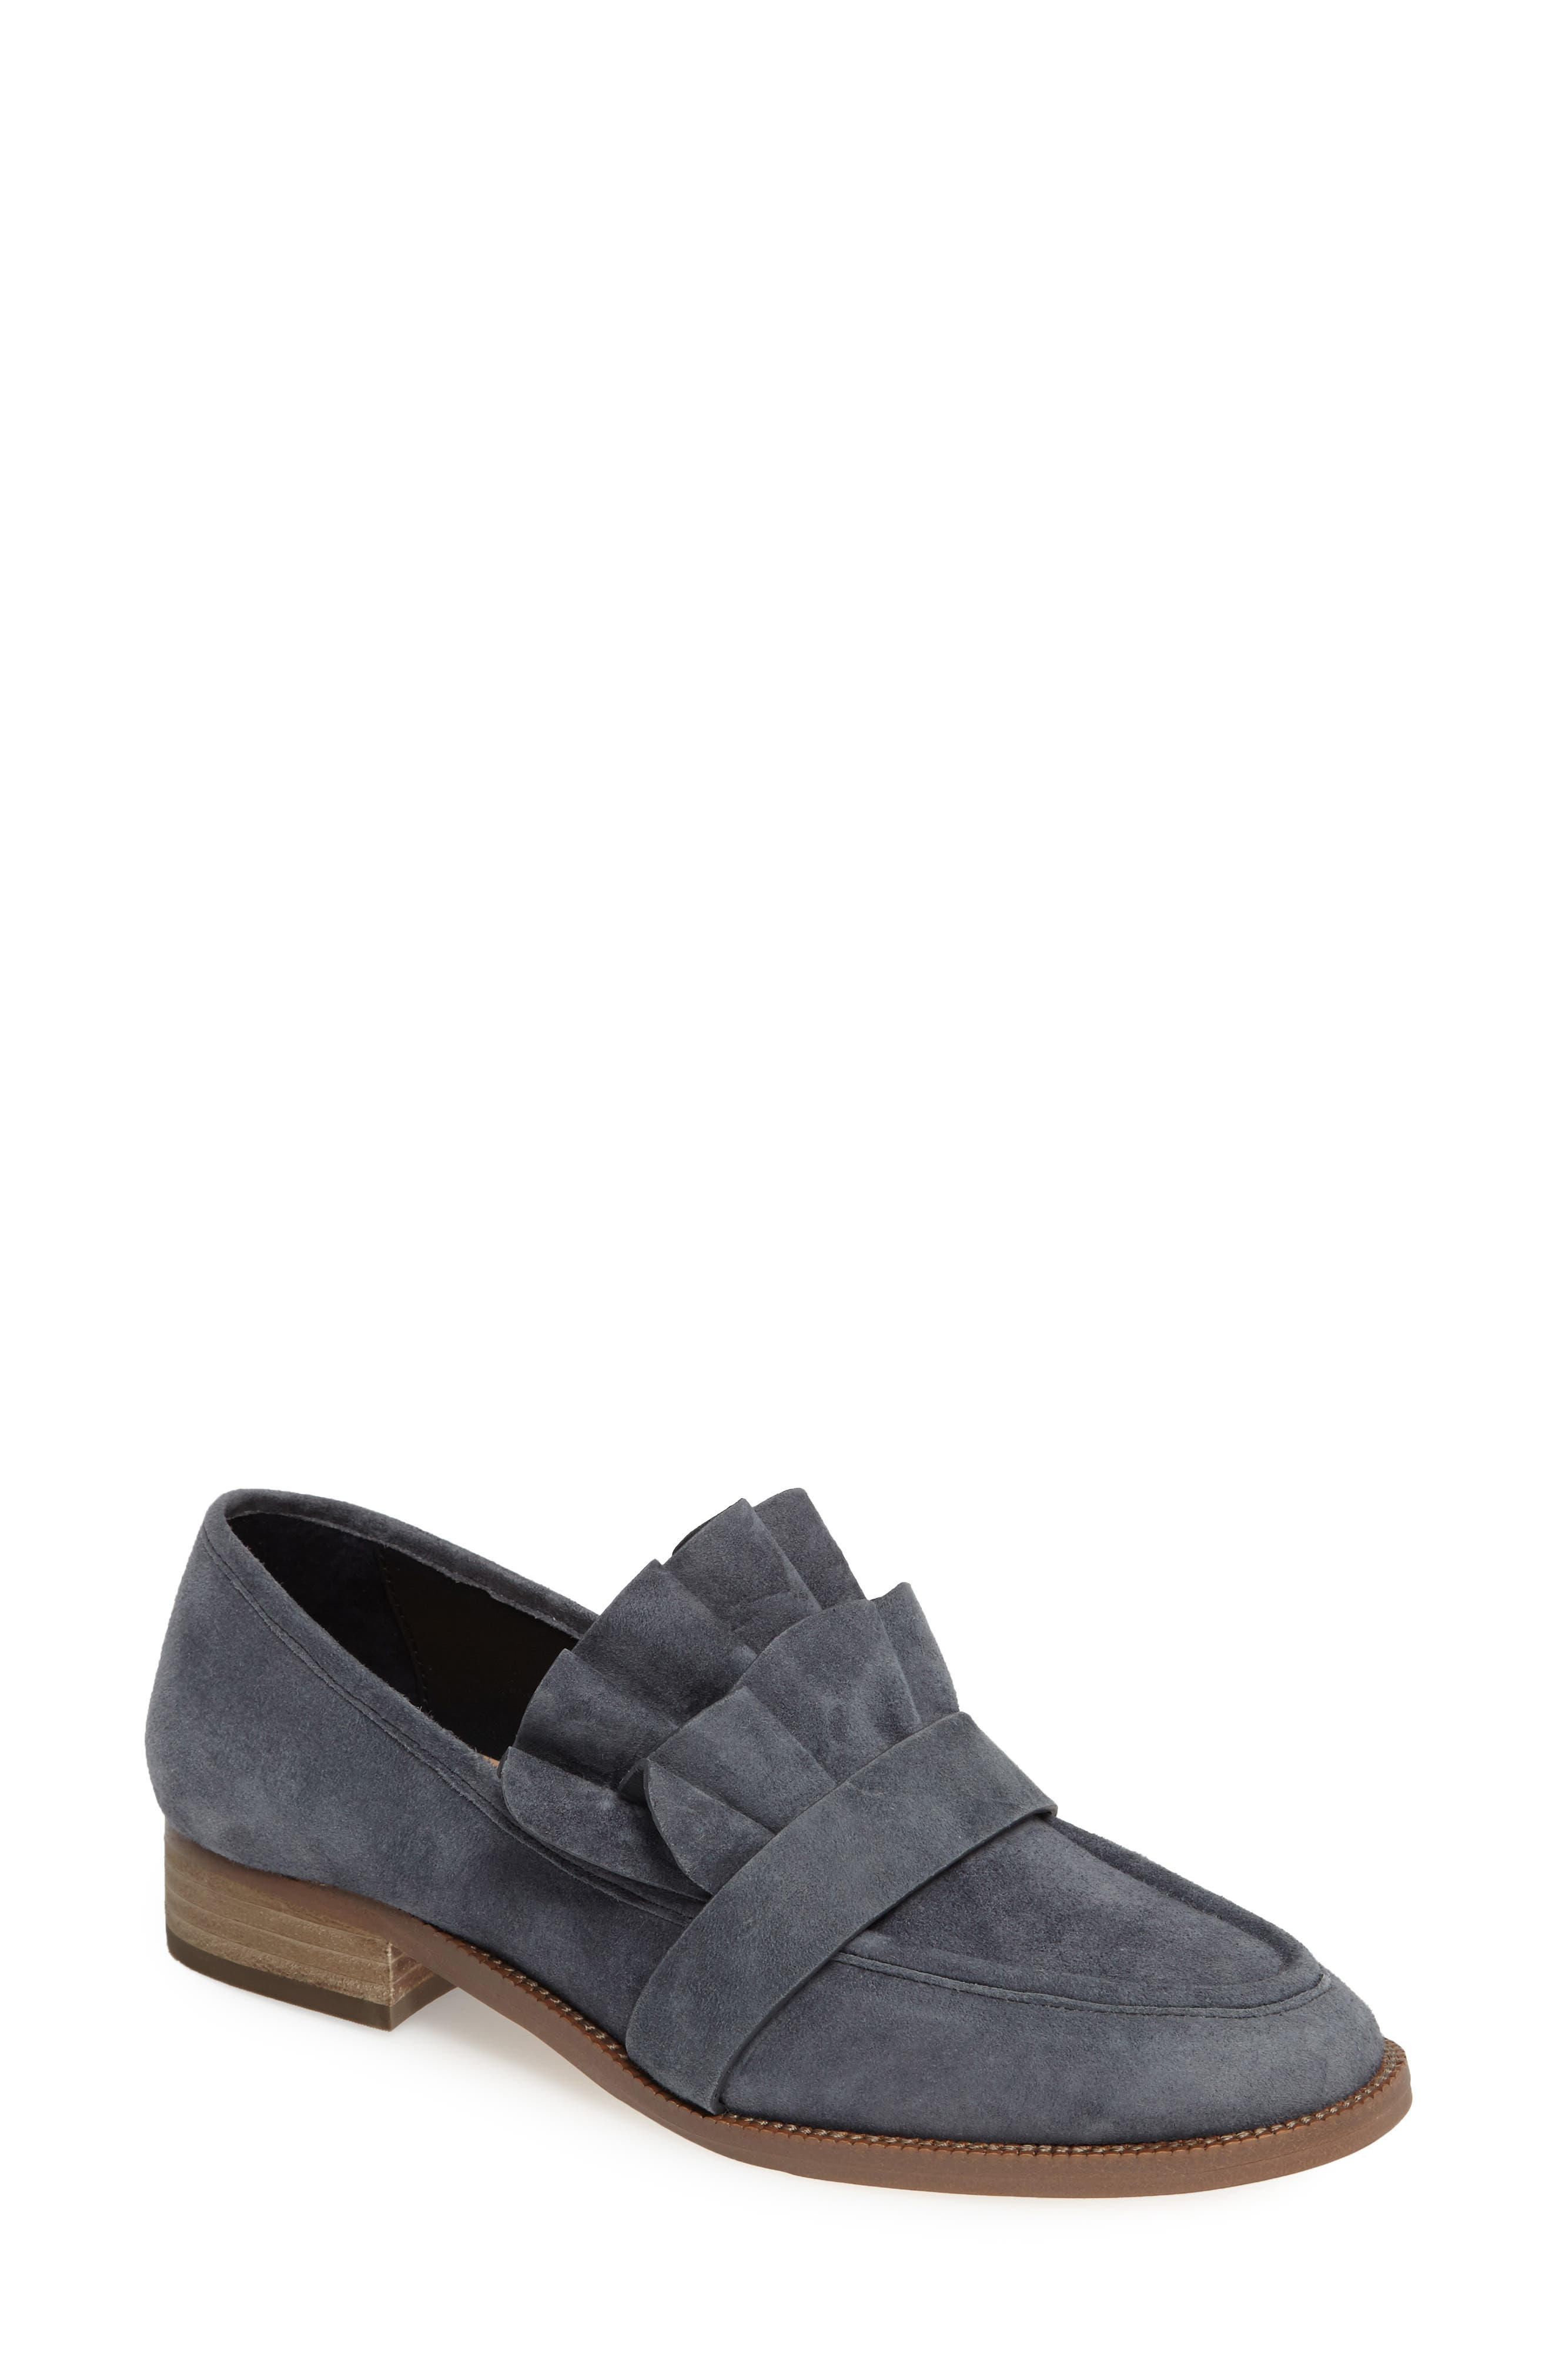 Tenley Ruffled Loafer,                             Main thumbnail 4, color,